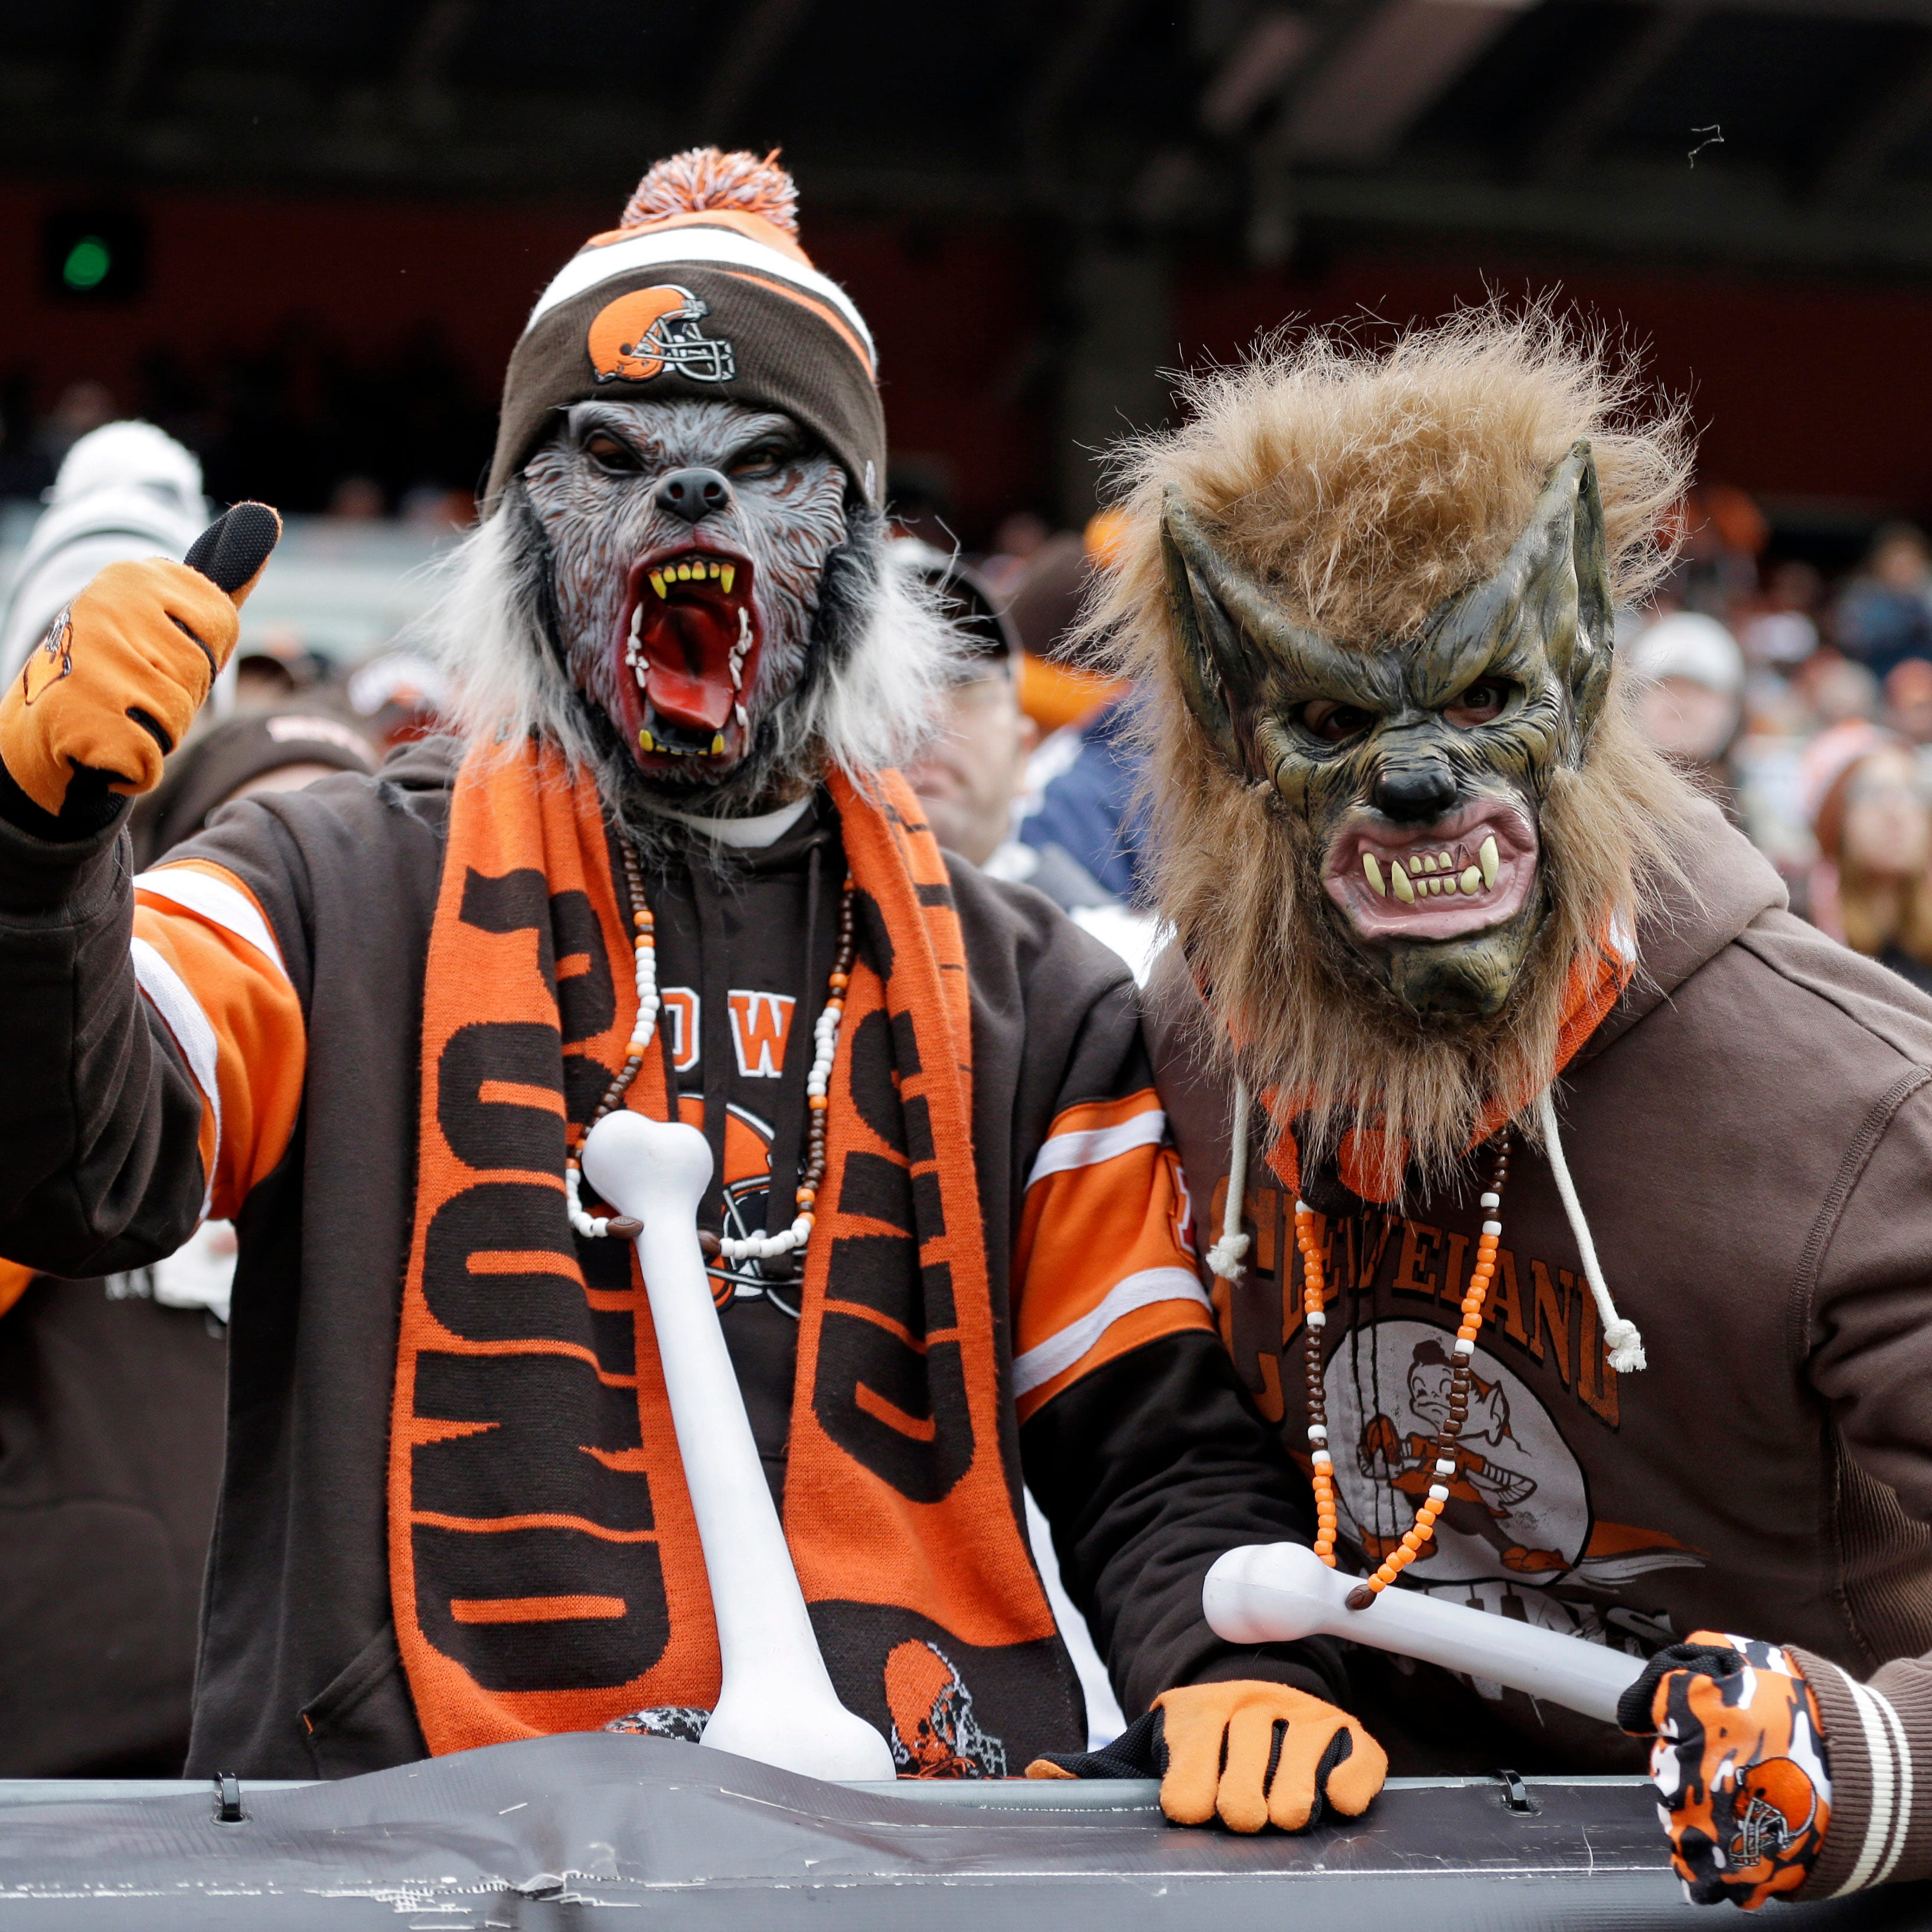 Cleveland Browns fans in the Dawg Pound cheer as their team prepares to kick off against the Jacksonville Jaguars in an NFL game Sunday, Dec. 1, 2013, in Cleveland.